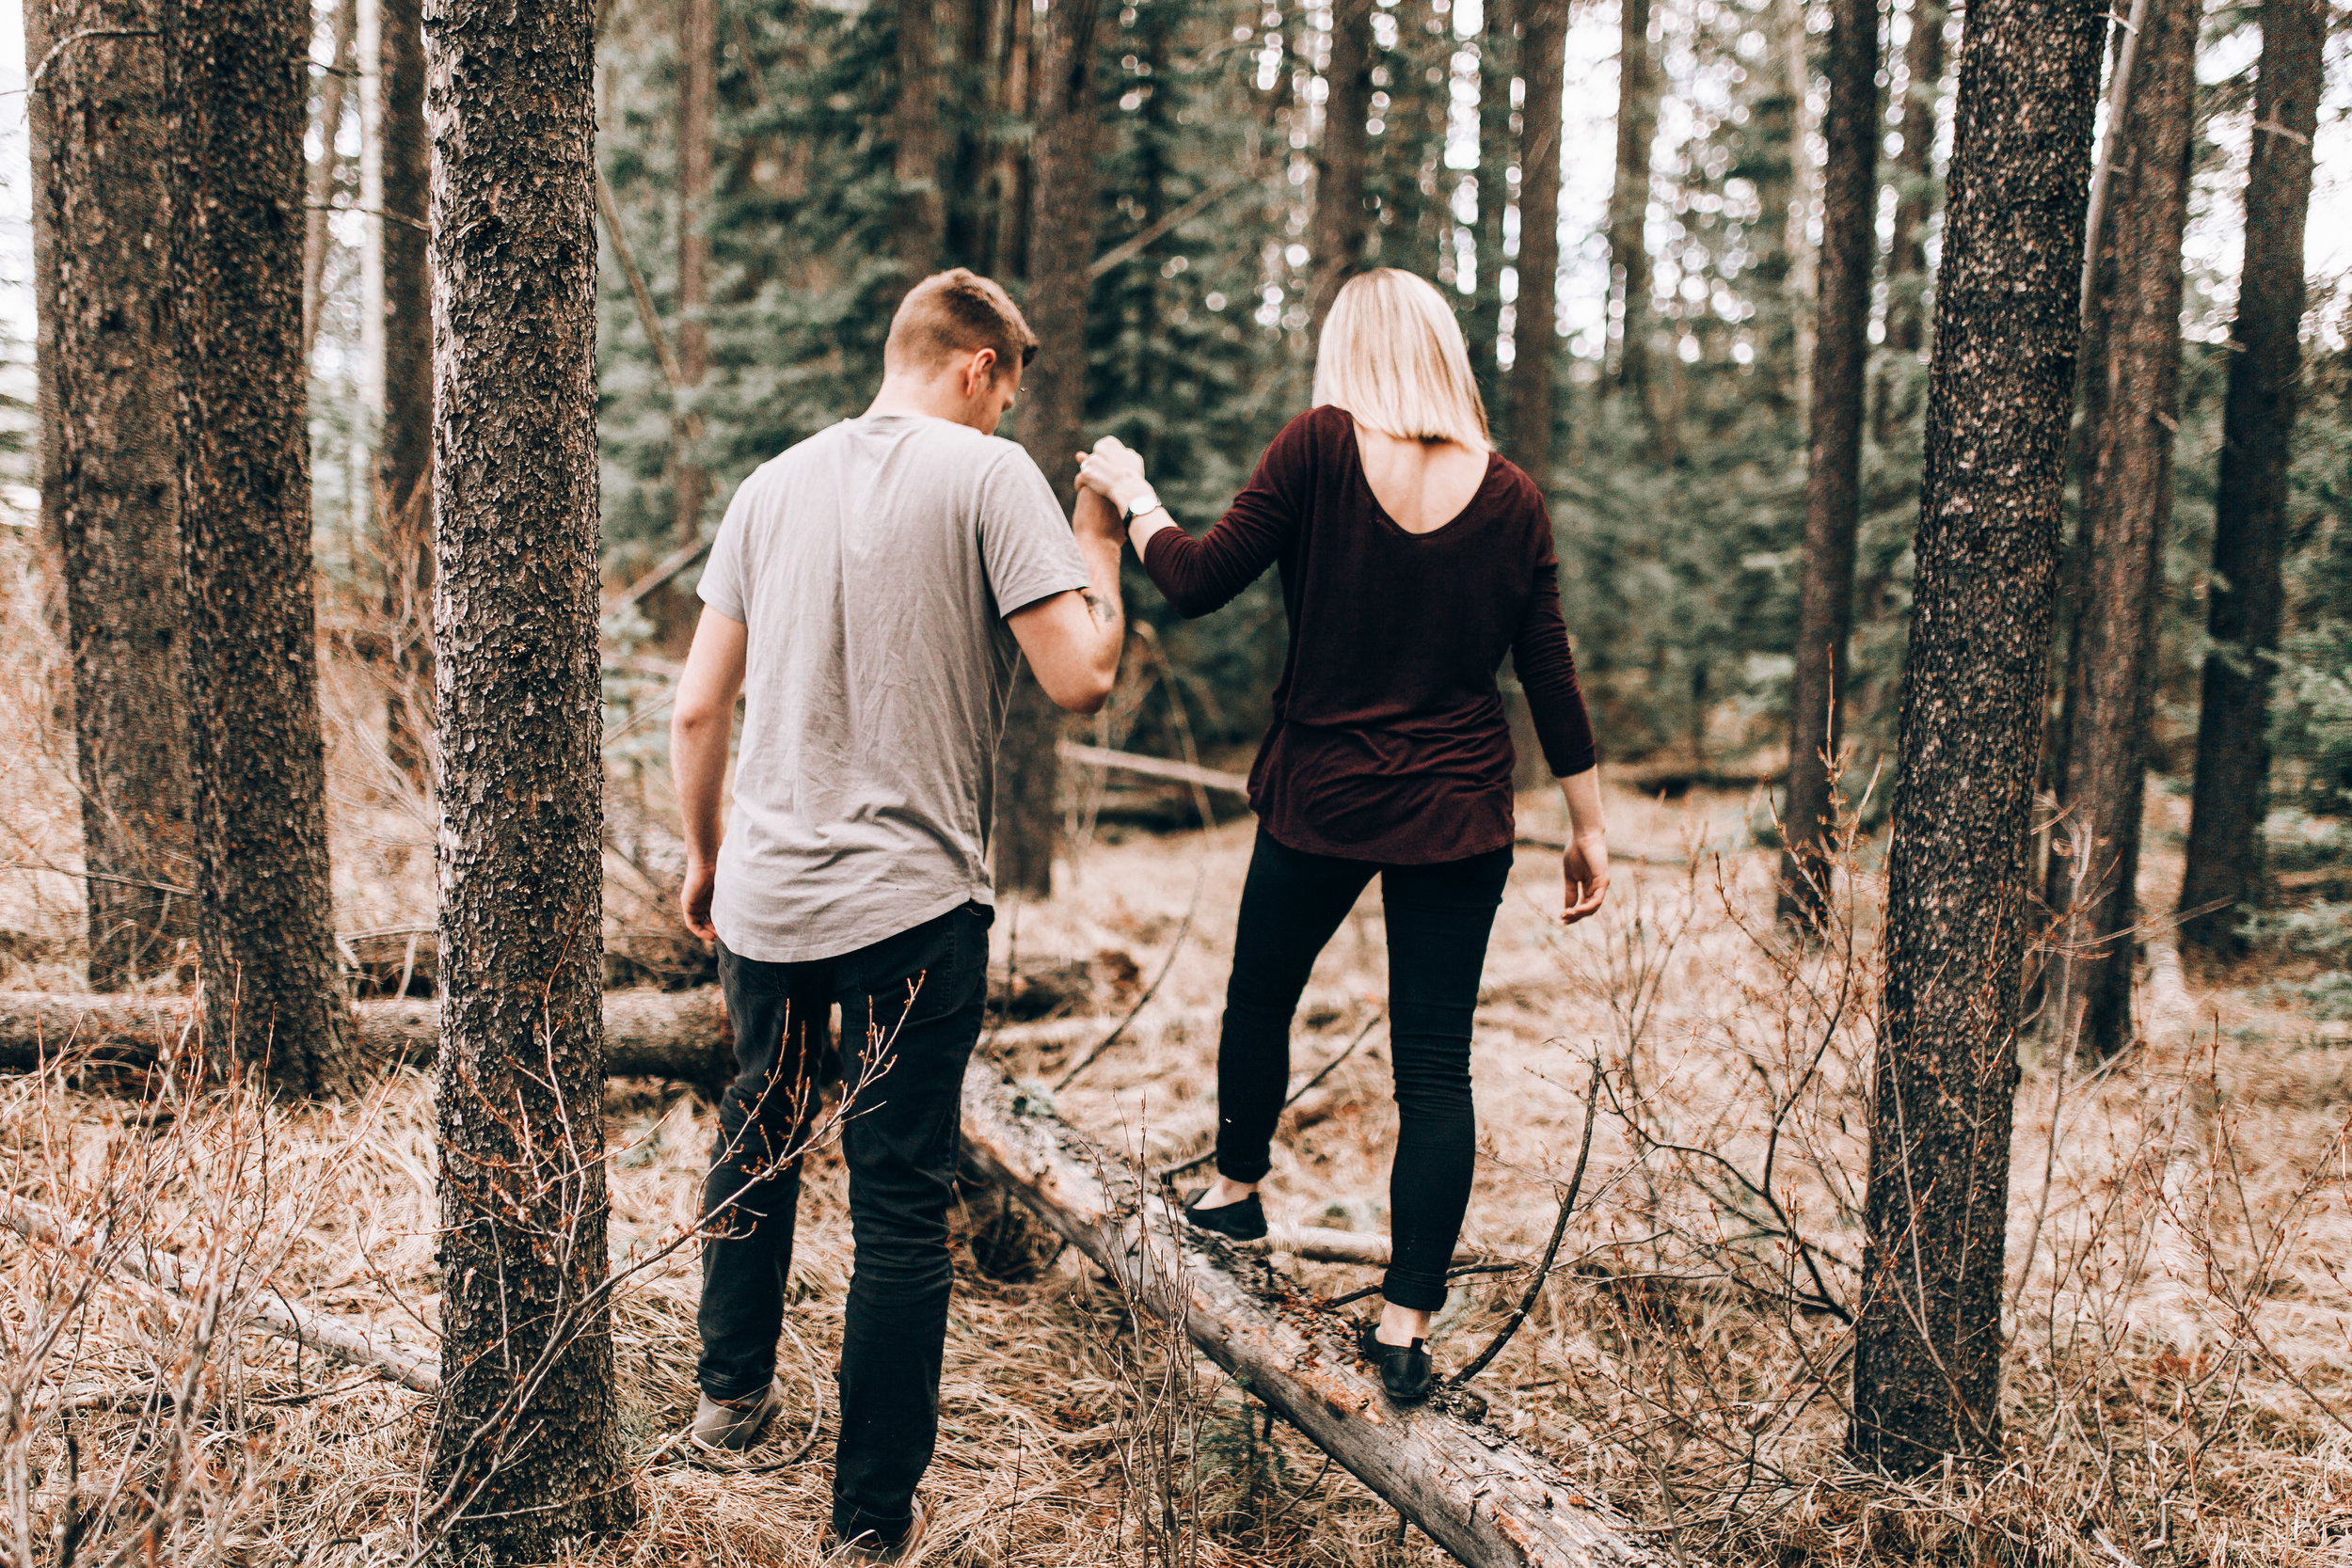 simpleperfectionsphotography.cullen+chelsey-26.jpg